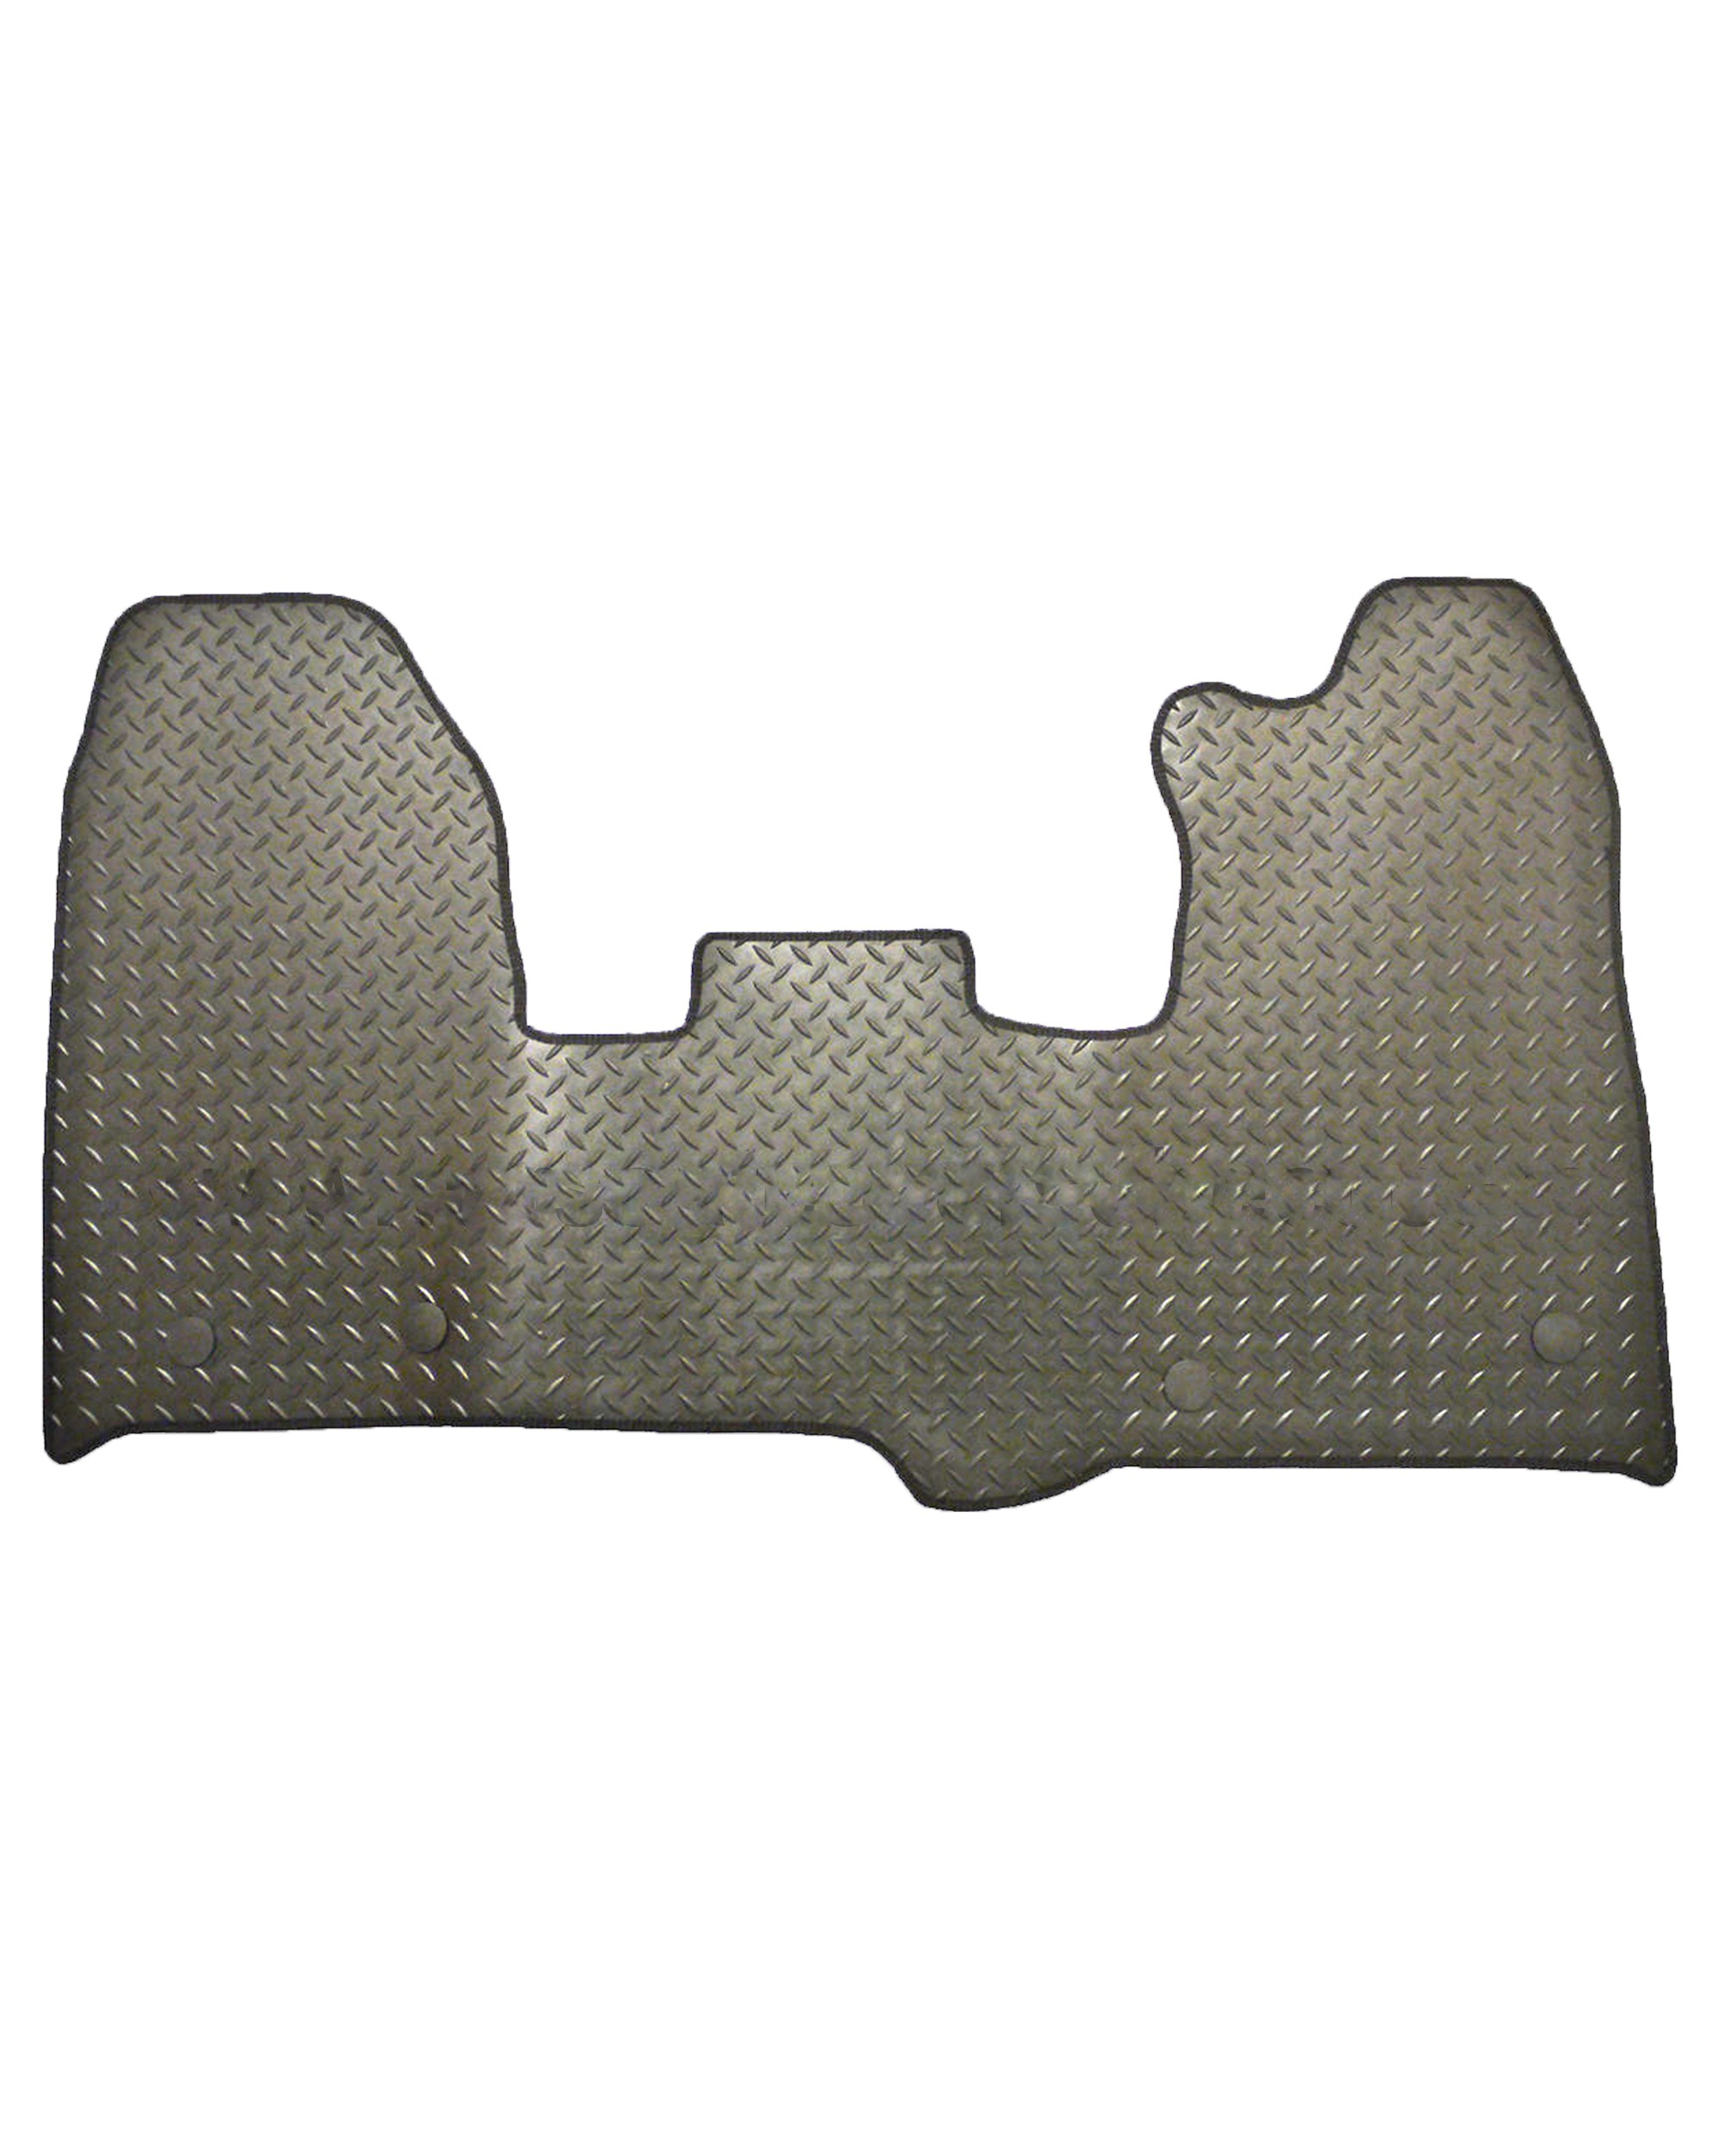 Ford Transit Custom EXTRA Heavy Duty Rubber Floor Mat 6mm